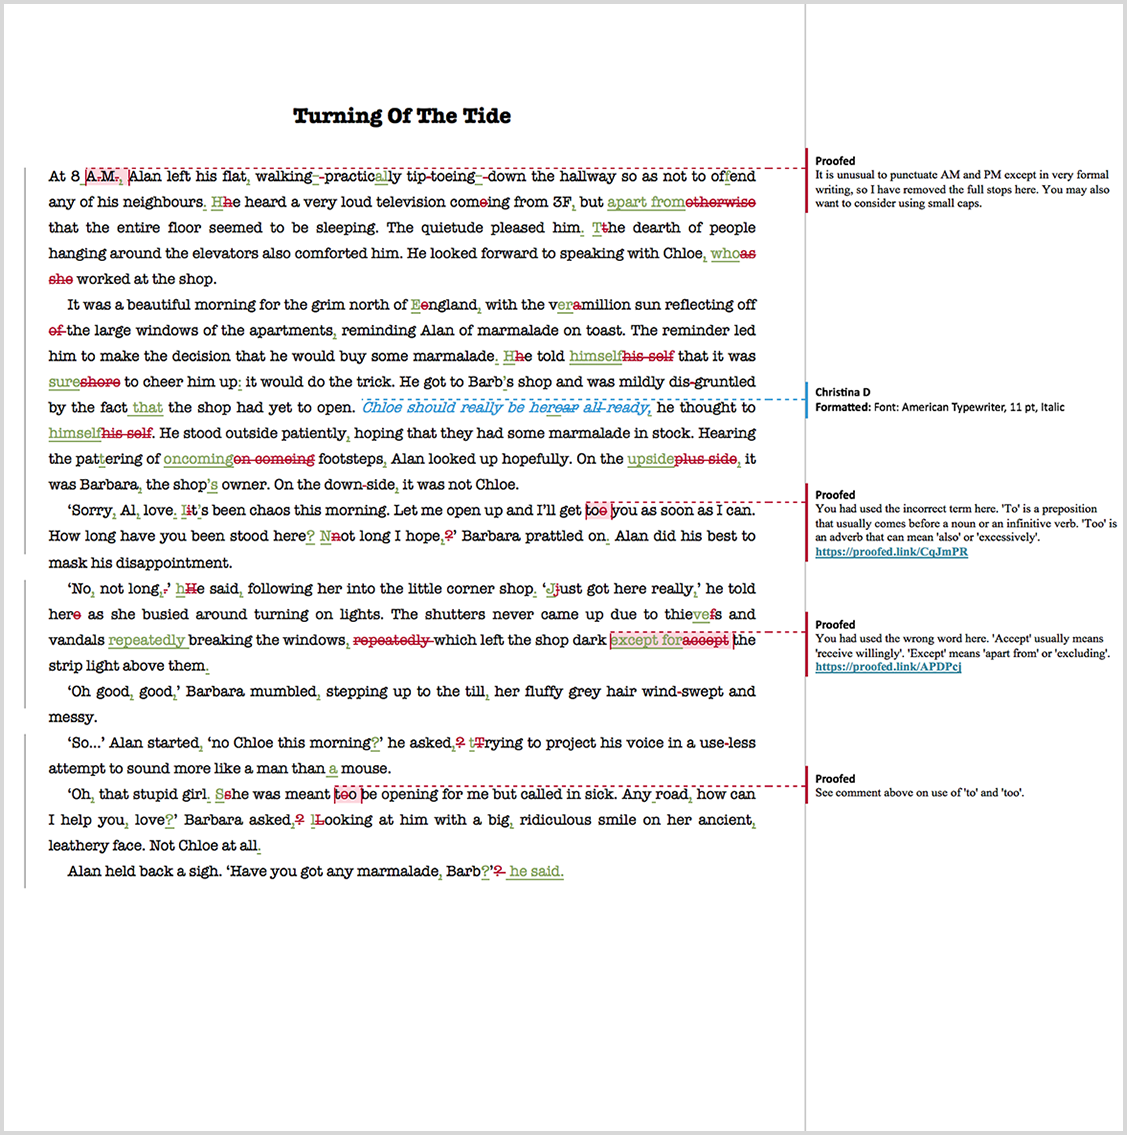 Ebook proofreading example after editing